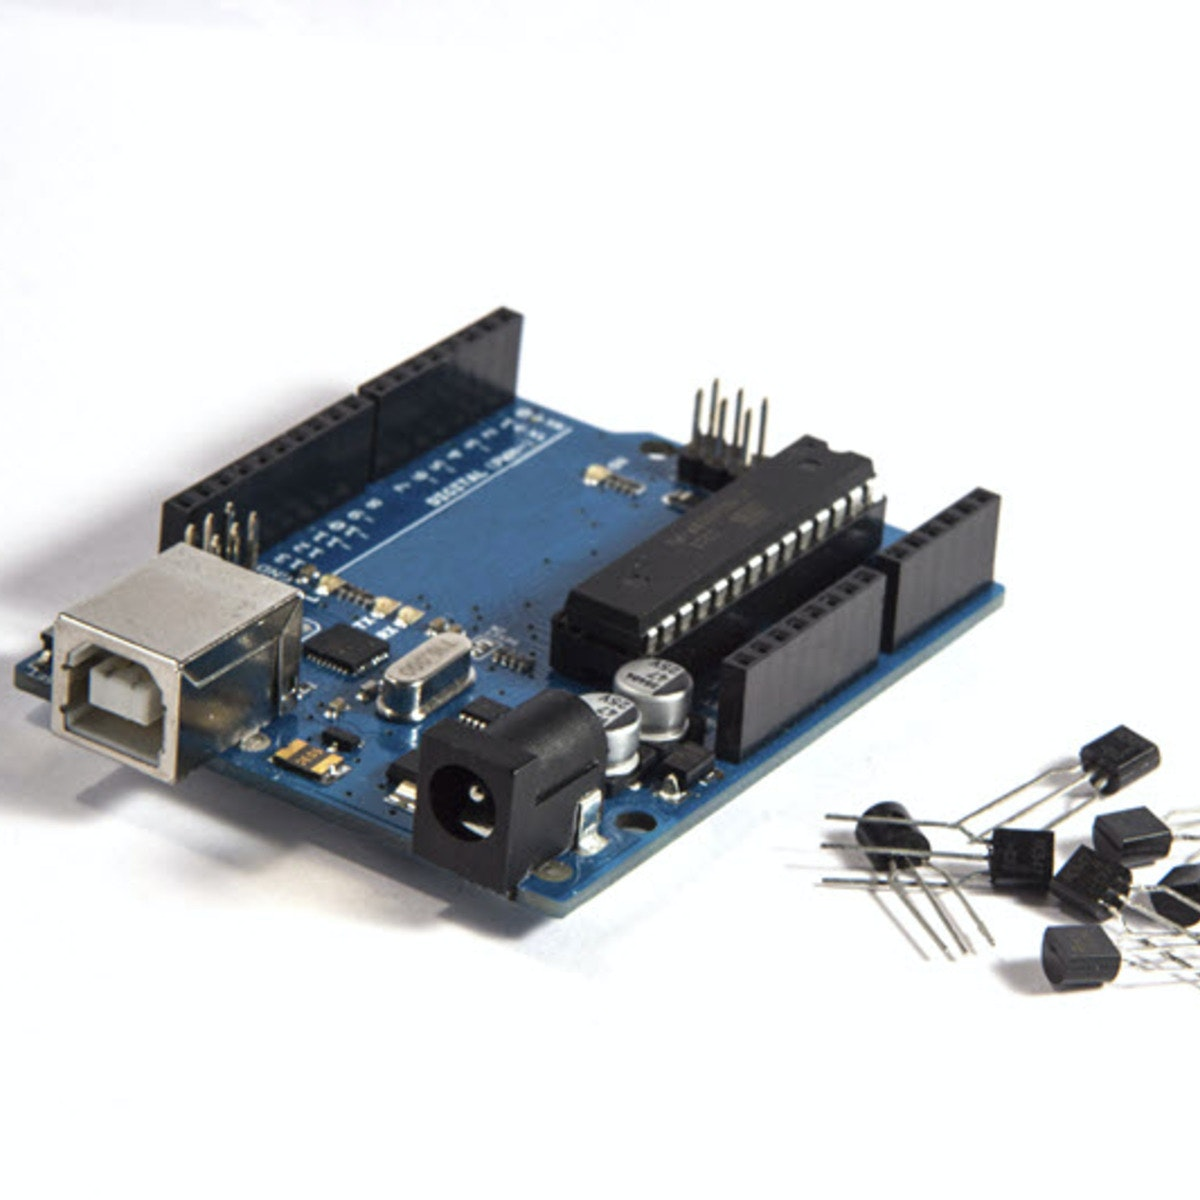 Interfacing with the arduino coursera